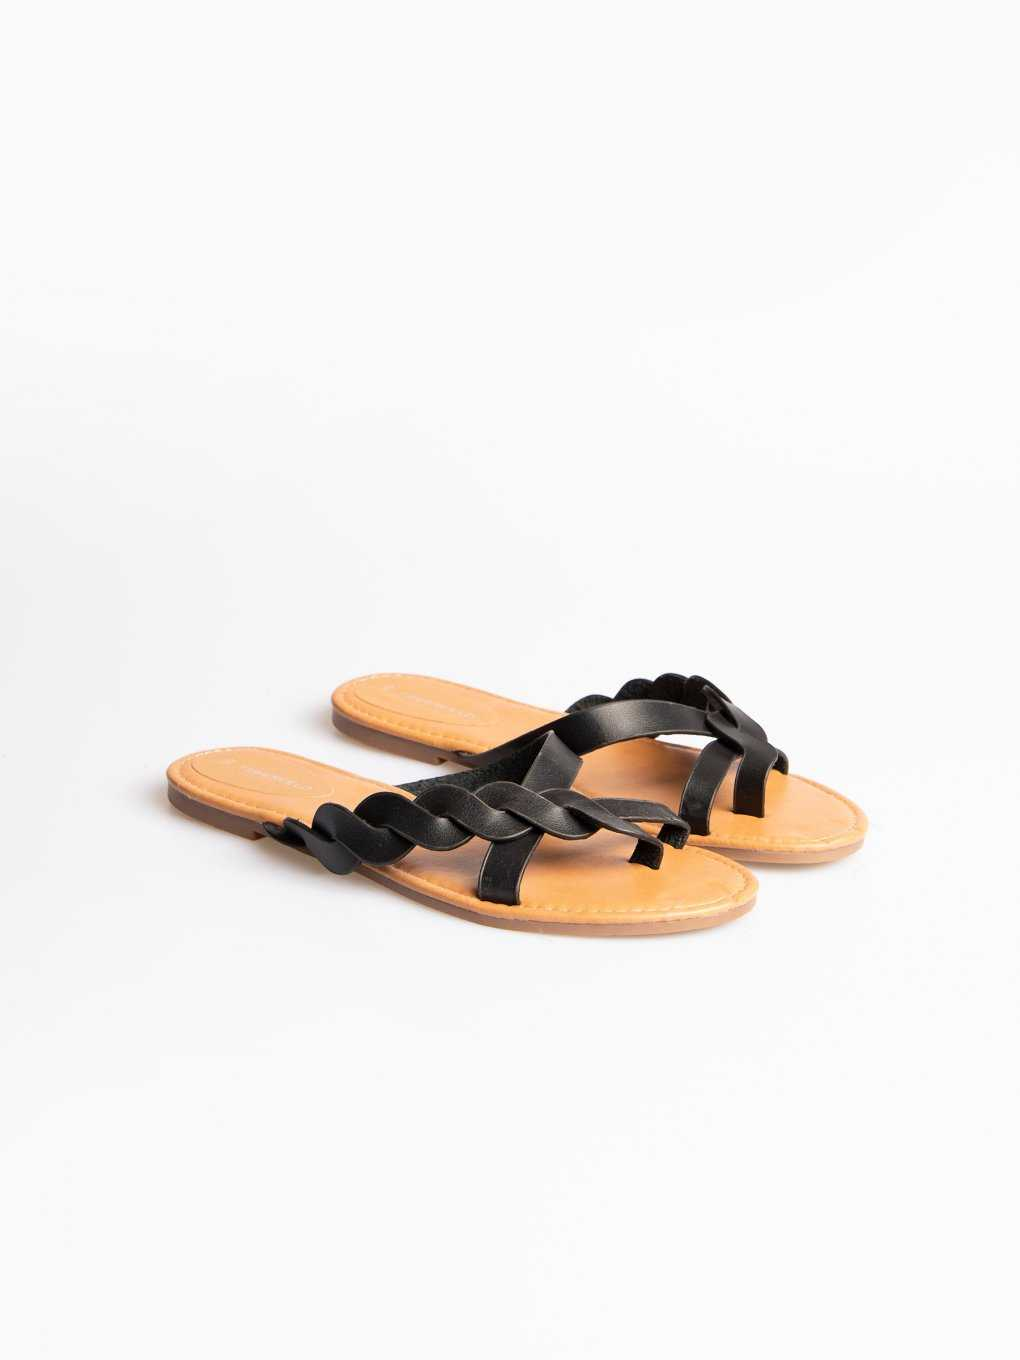 Slides with braided strap